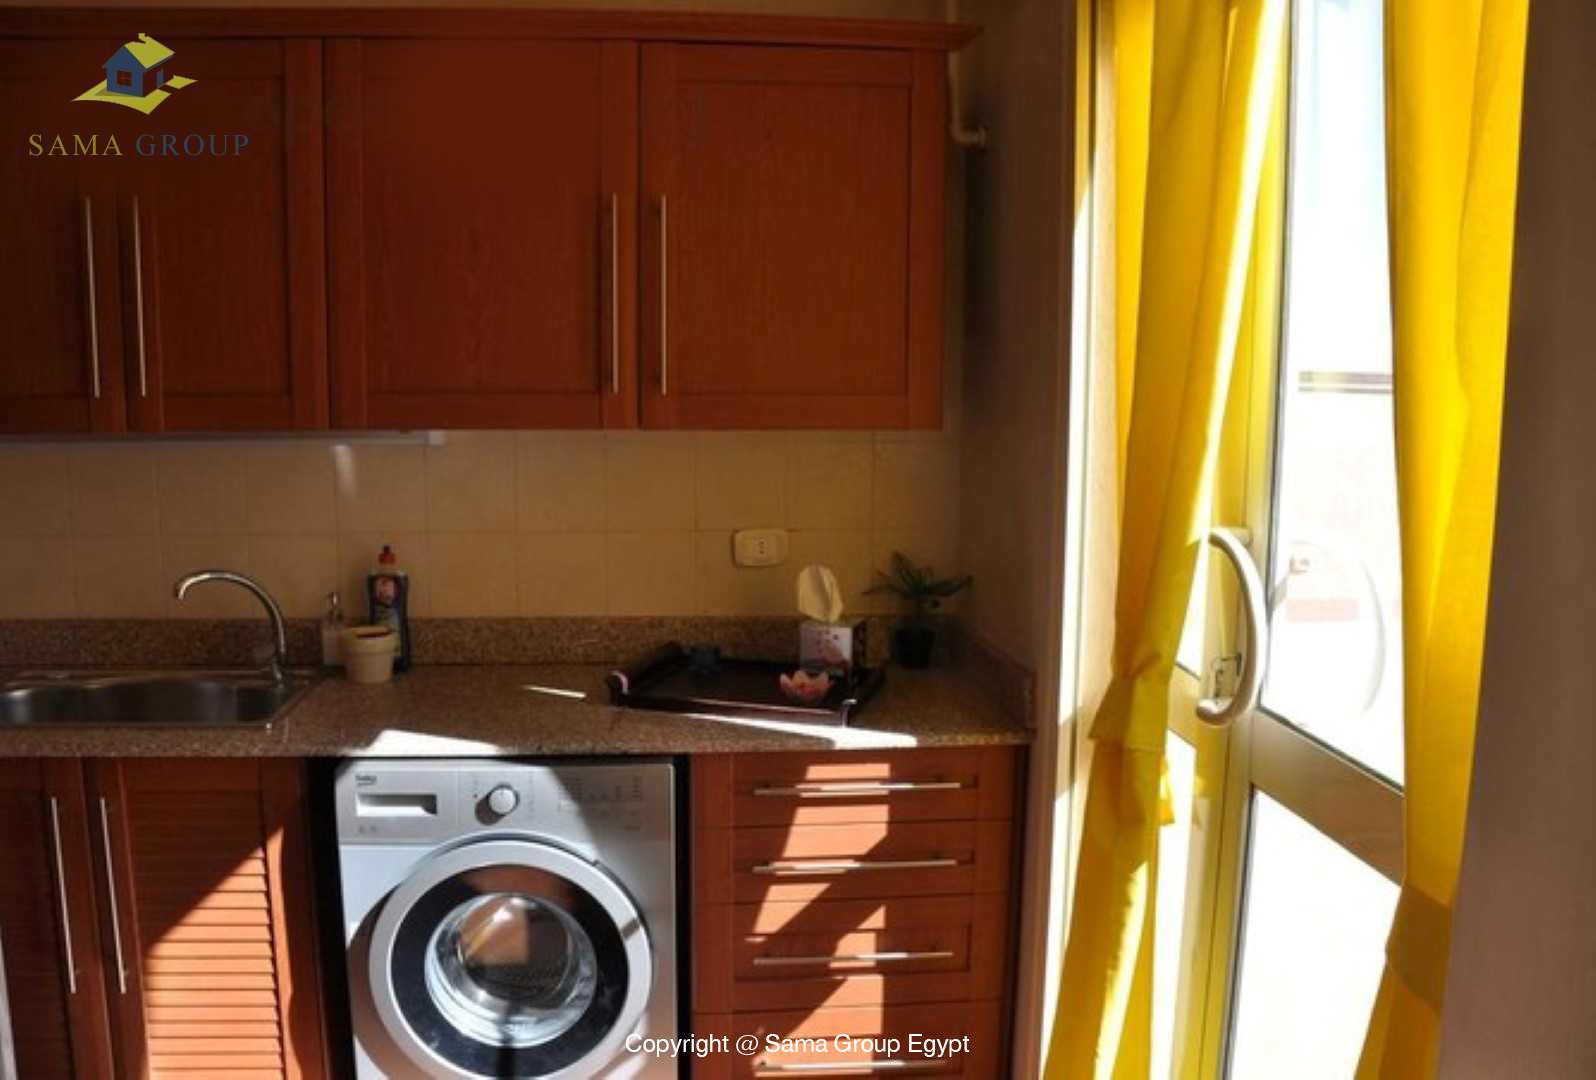 Studio For Rent In New Cairo Chouifat,Modern Furnished,Studio NO #7